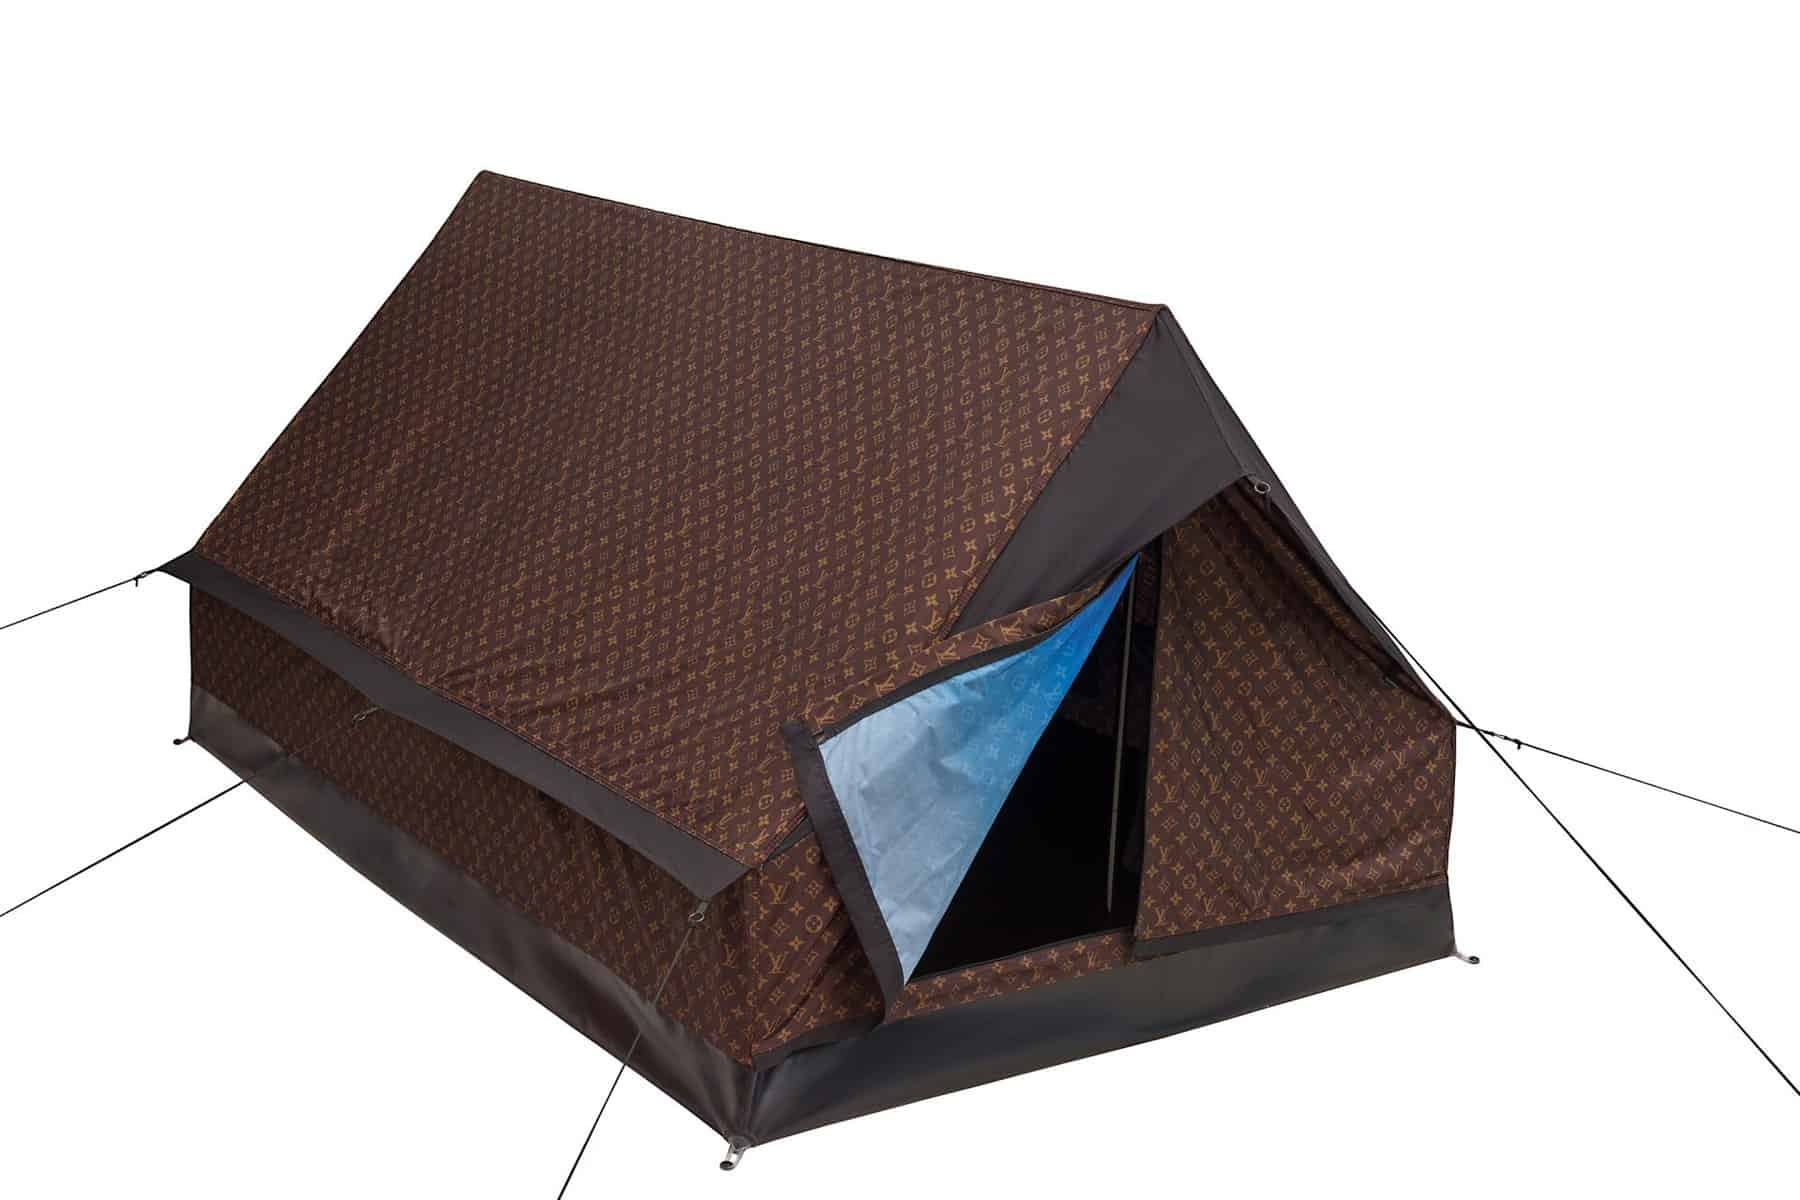 Louis Vuitton camping tent 4